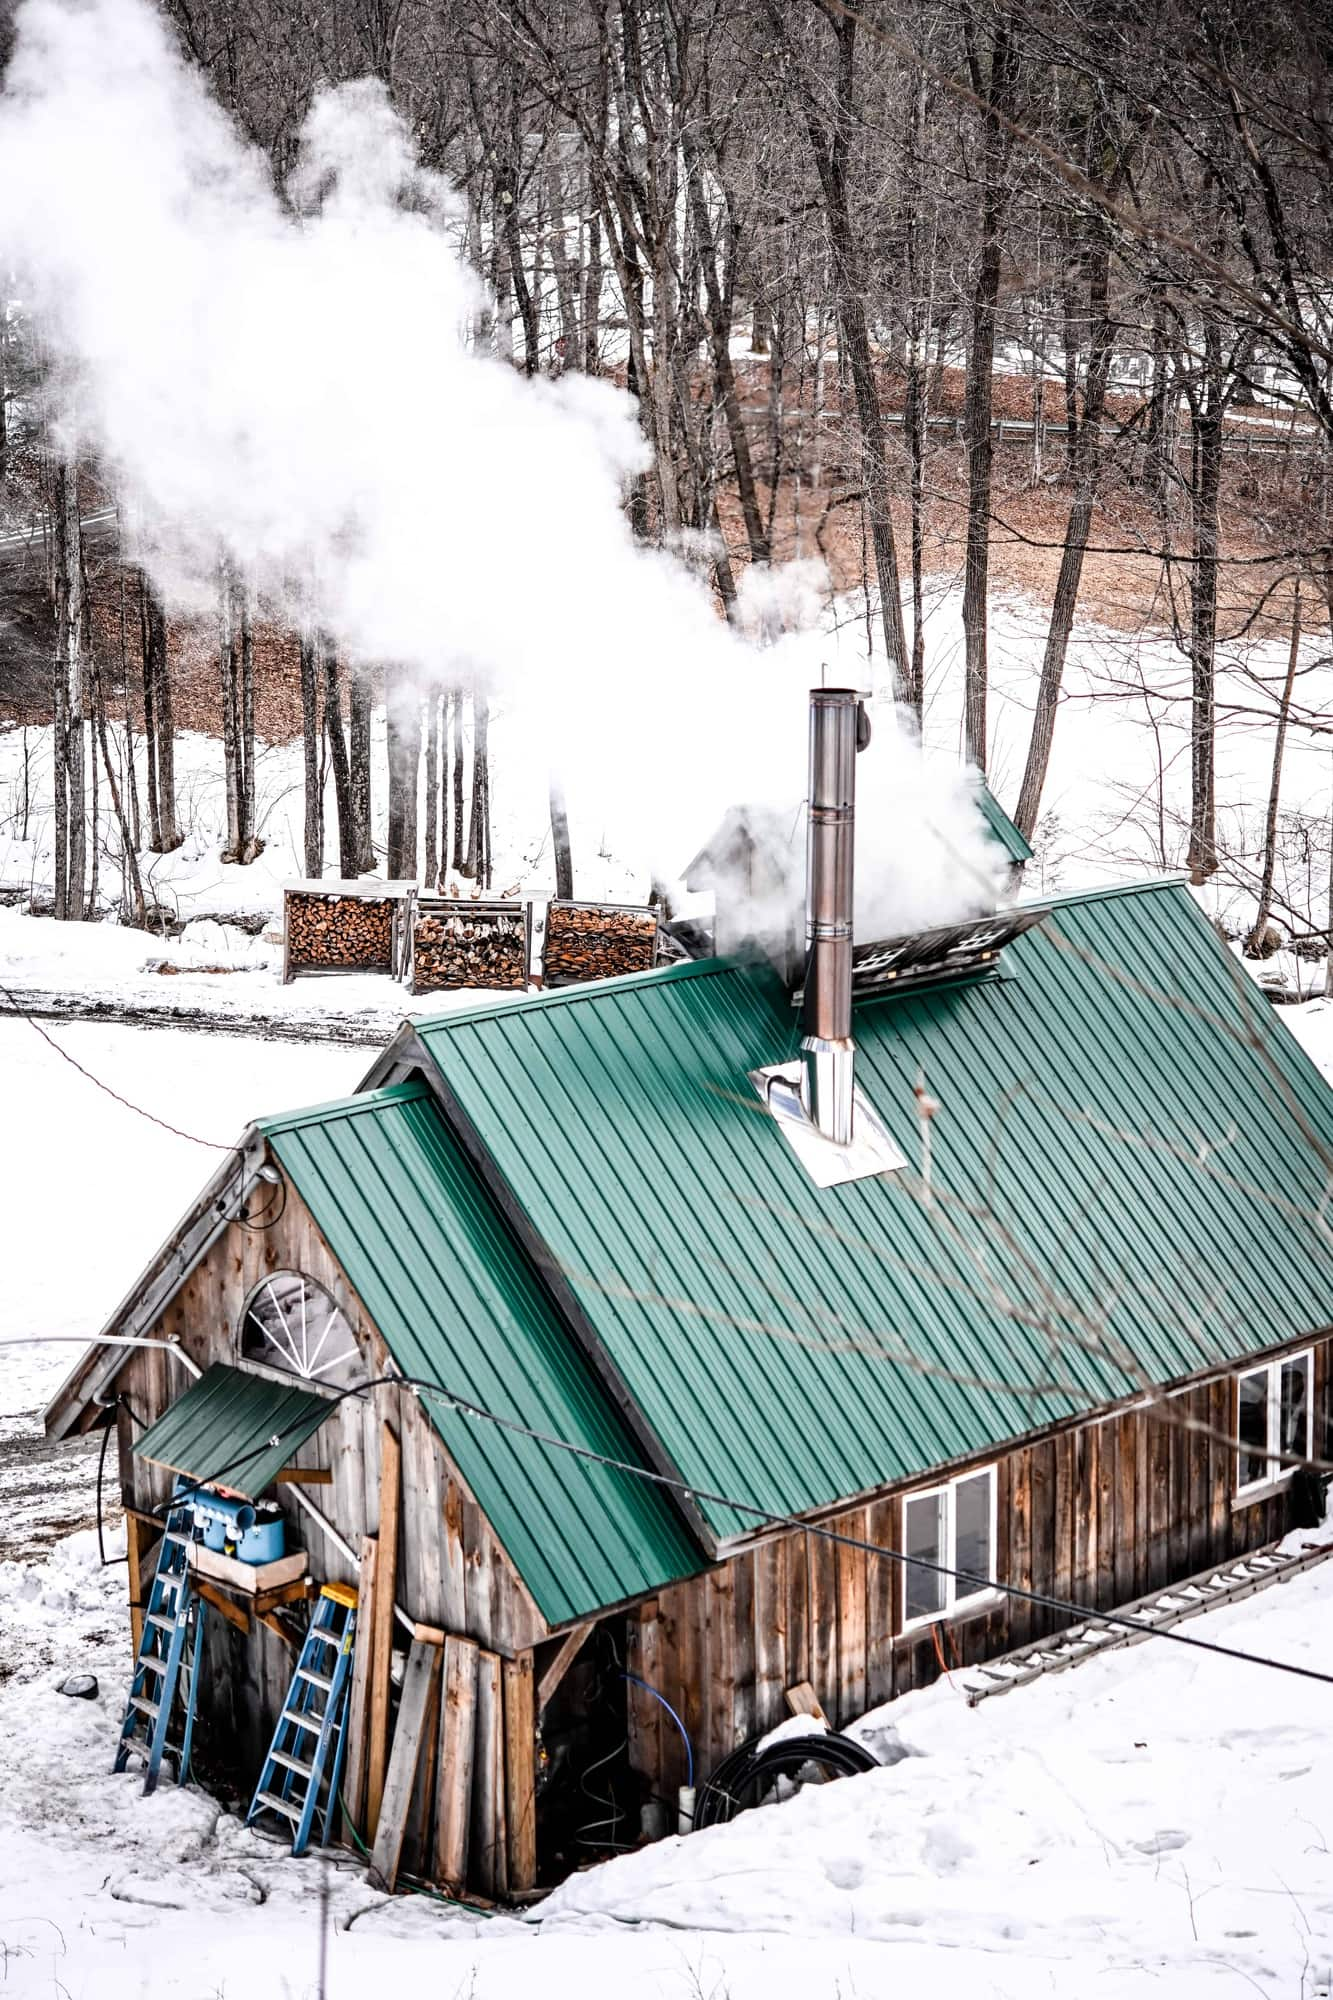 Back view of a Vermont Sugarhouse with steam coming from roof in winter